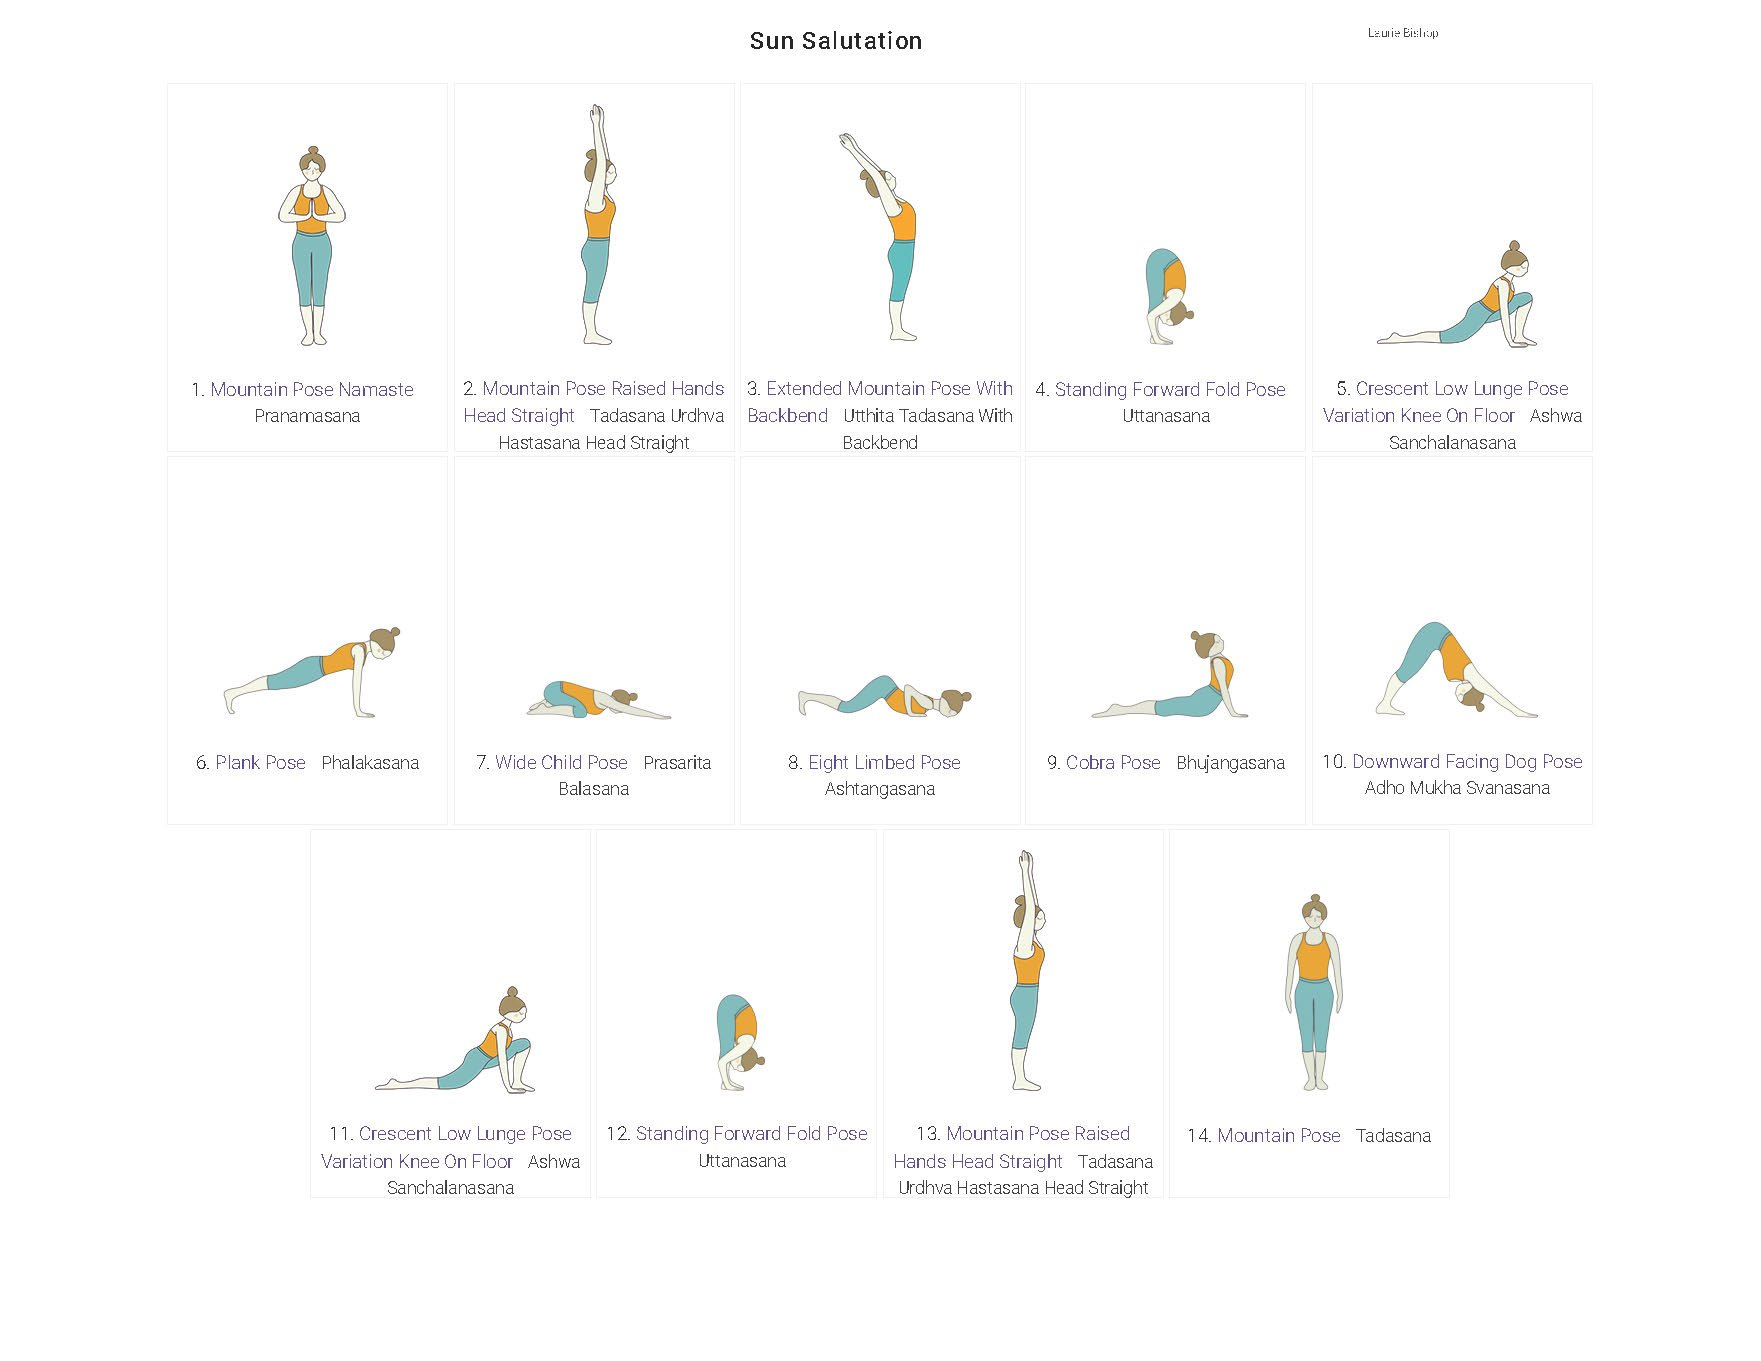 Sun-Salutation-by-Laurie-Bishop